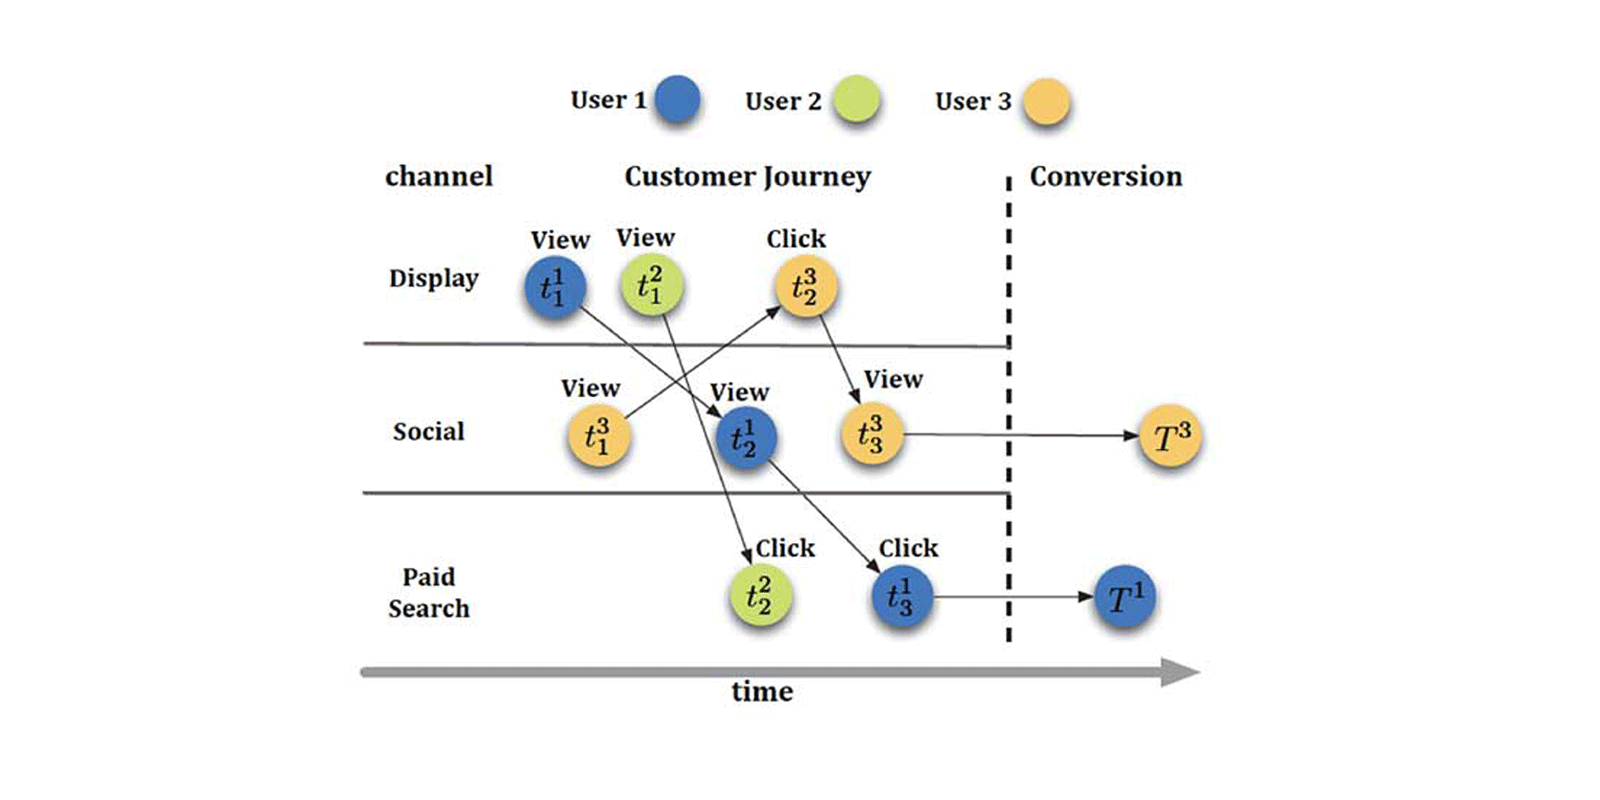 TOPBOTS Applied AI and machine learning for marketing attribution